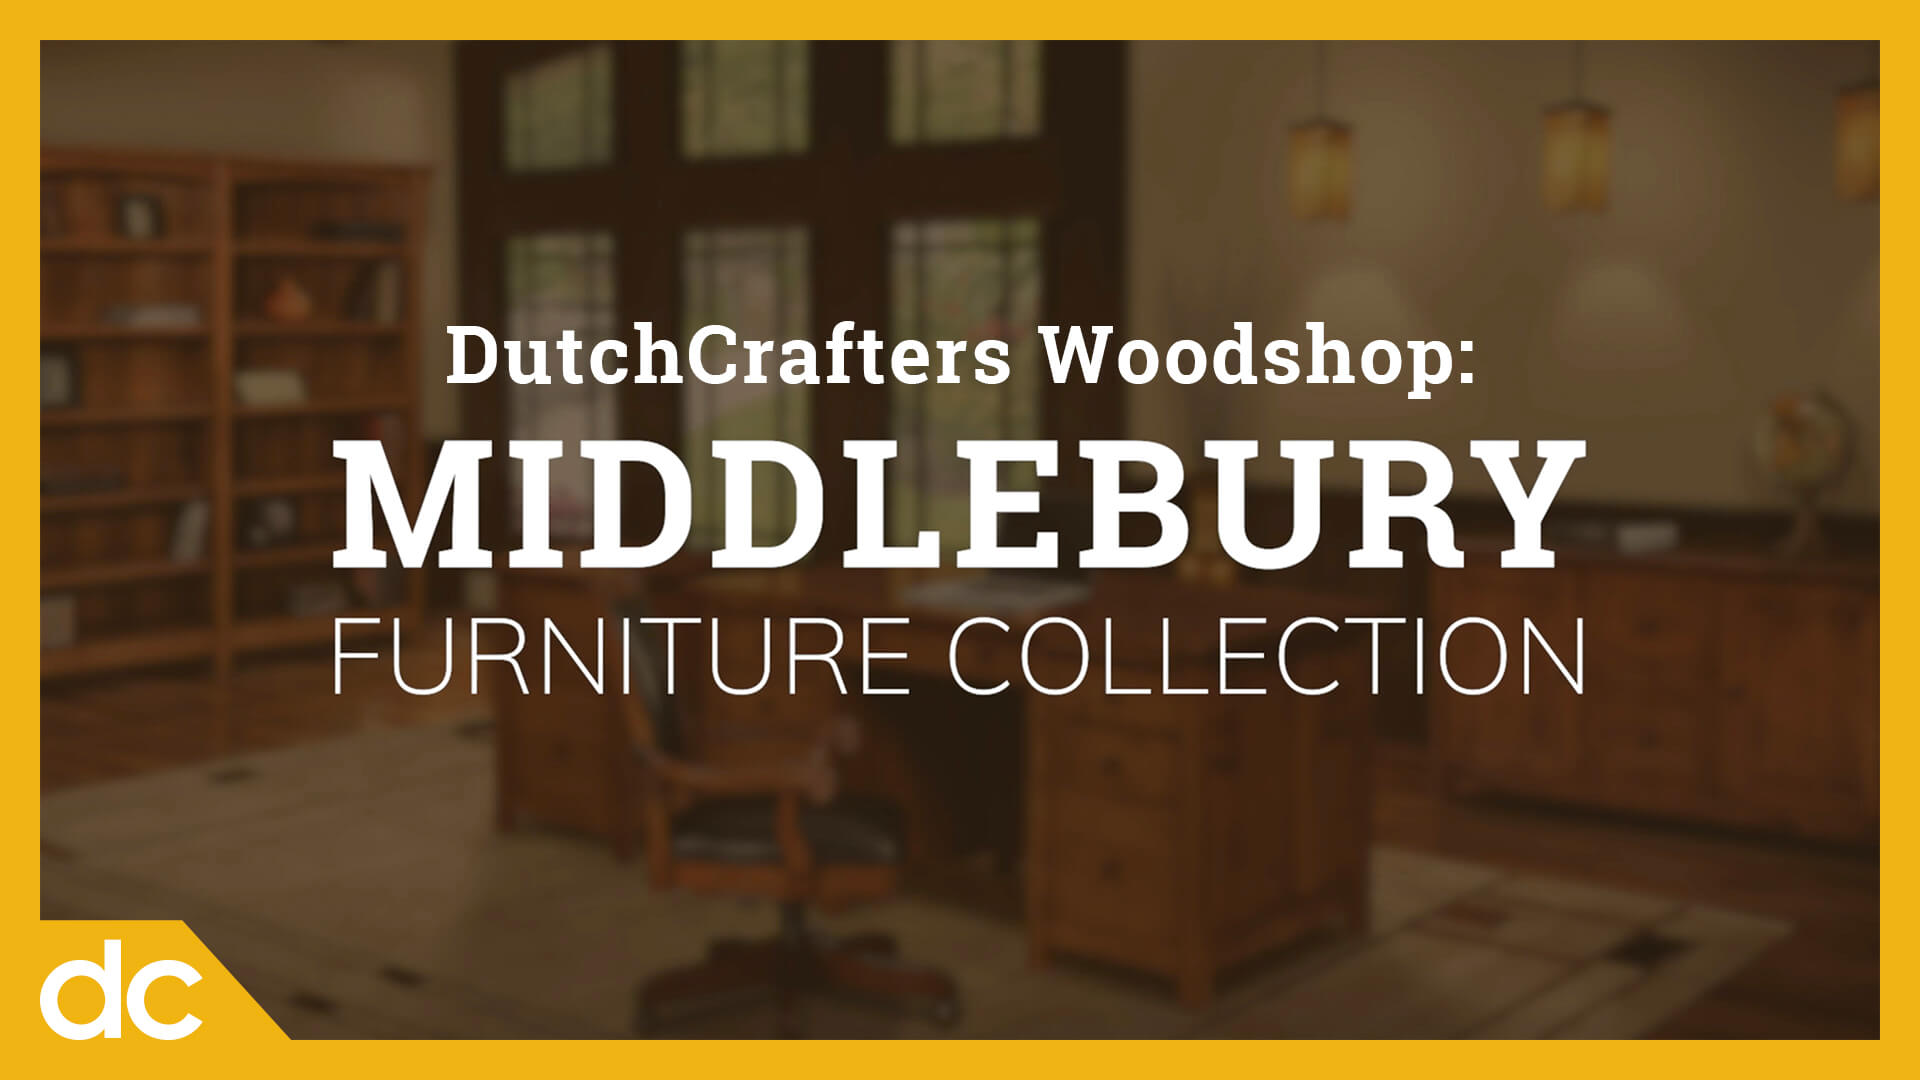 DutchCrafters Woodshop: Middlebury Furniture Collection Title